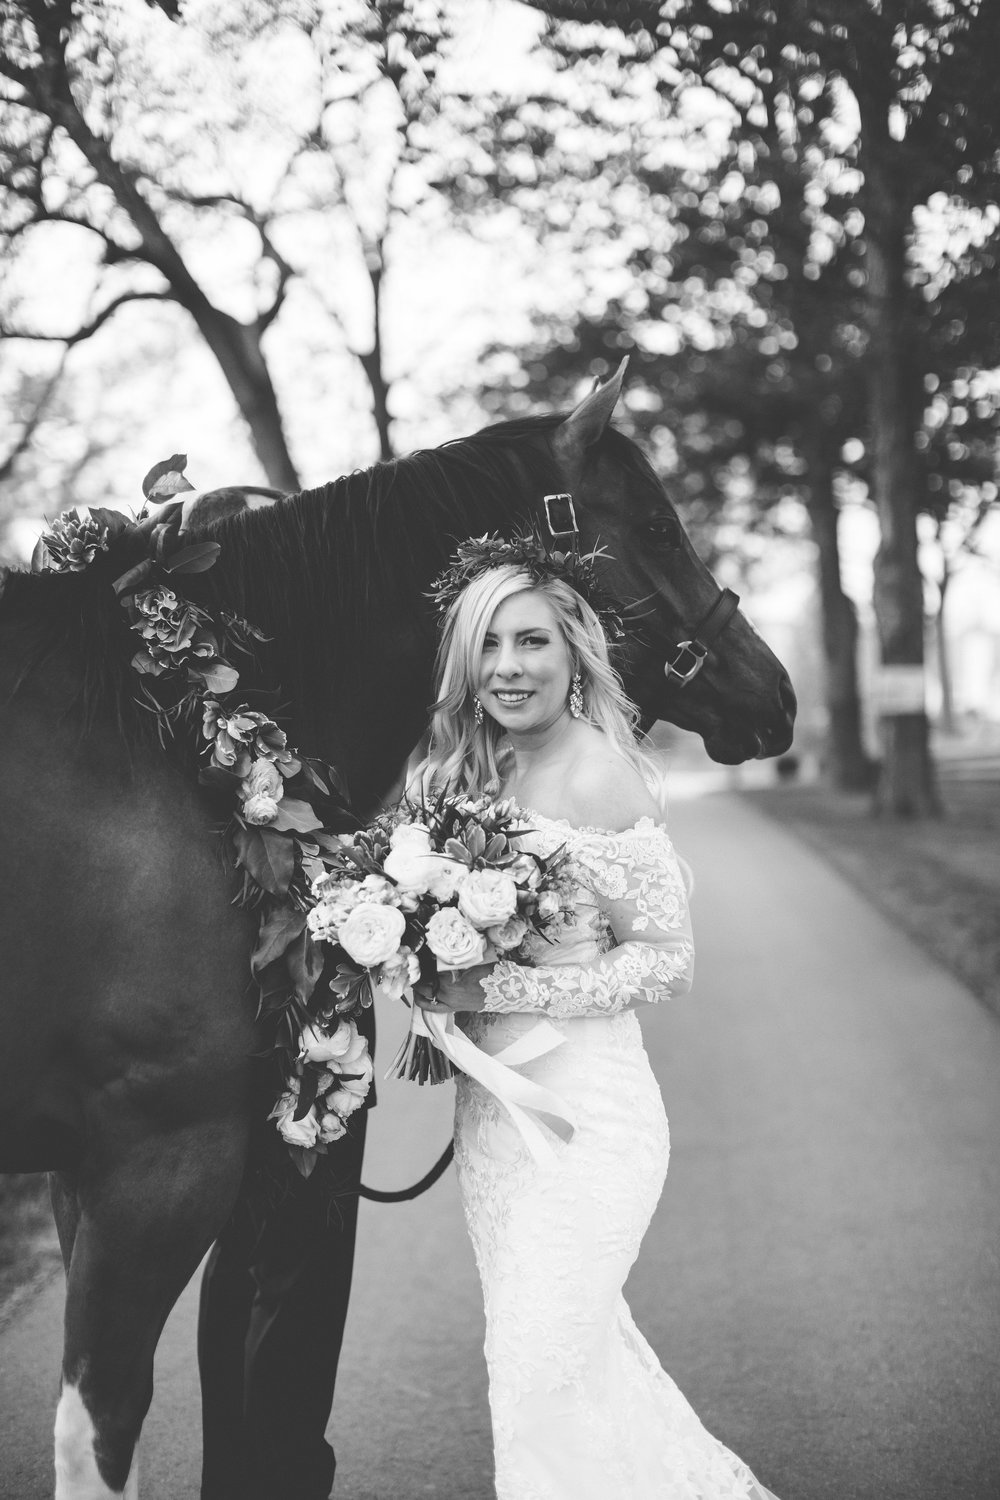 Detroit Photographer, Photographer, Michigan Photographer, Wedding Photographer, Family Photographer, Newborn Photographer,  Maternity Photographer,  Equine Photographer, Portraits, Weddings